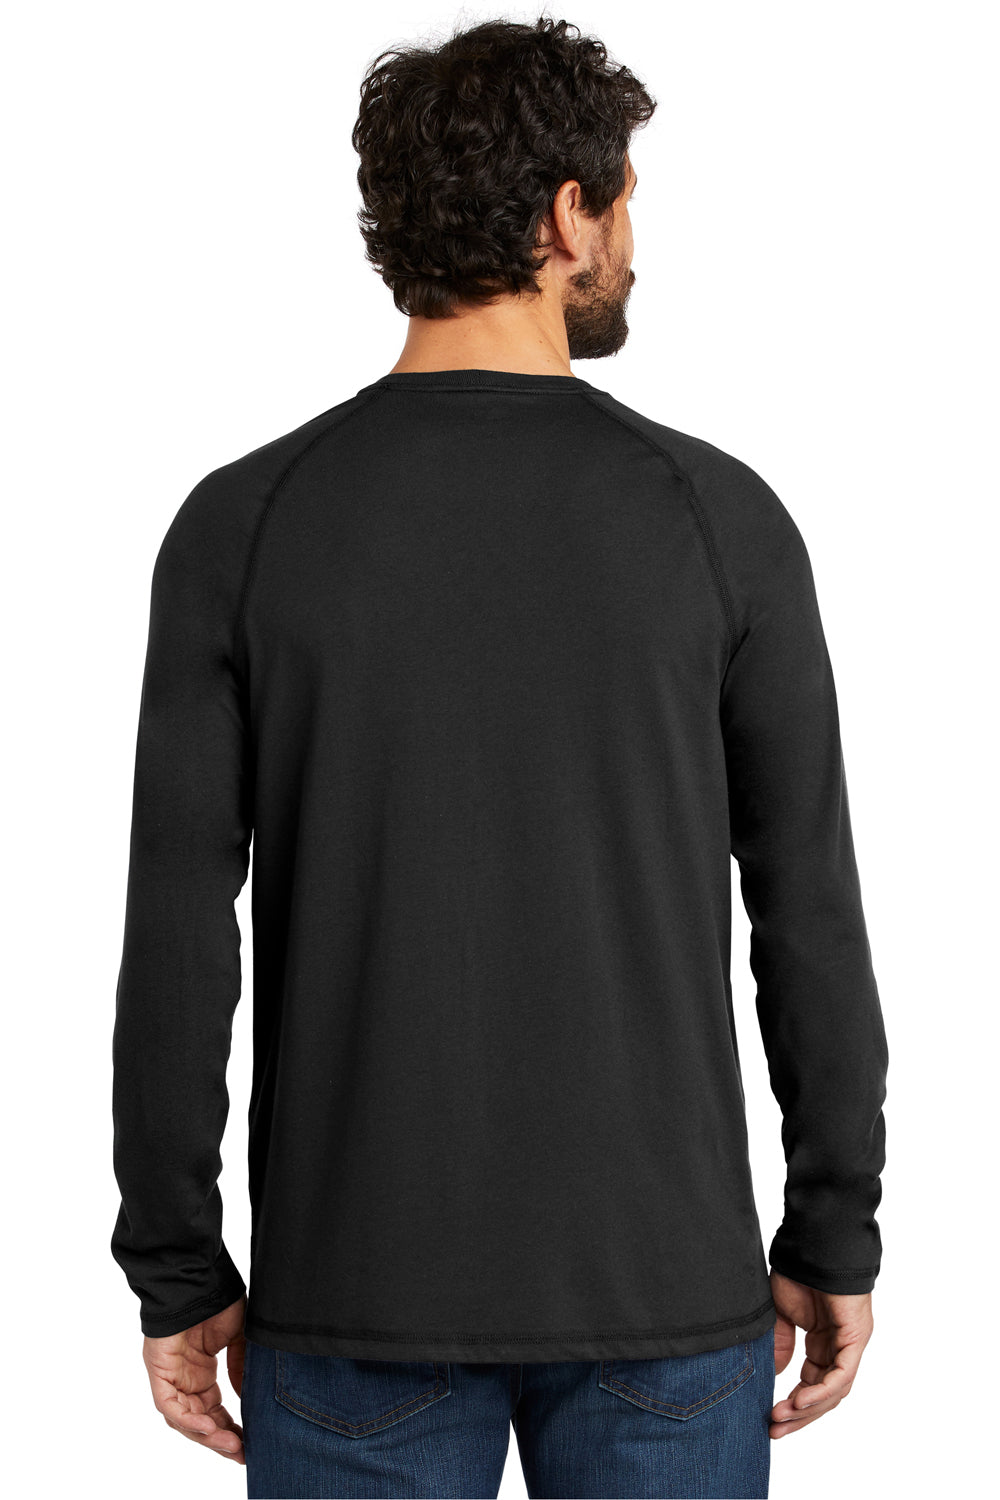 Carhartt CT100393 Mens Delmont Moisture Wicking Long Sleeve Crewneck T-Shirt w/ Pocket Black Back